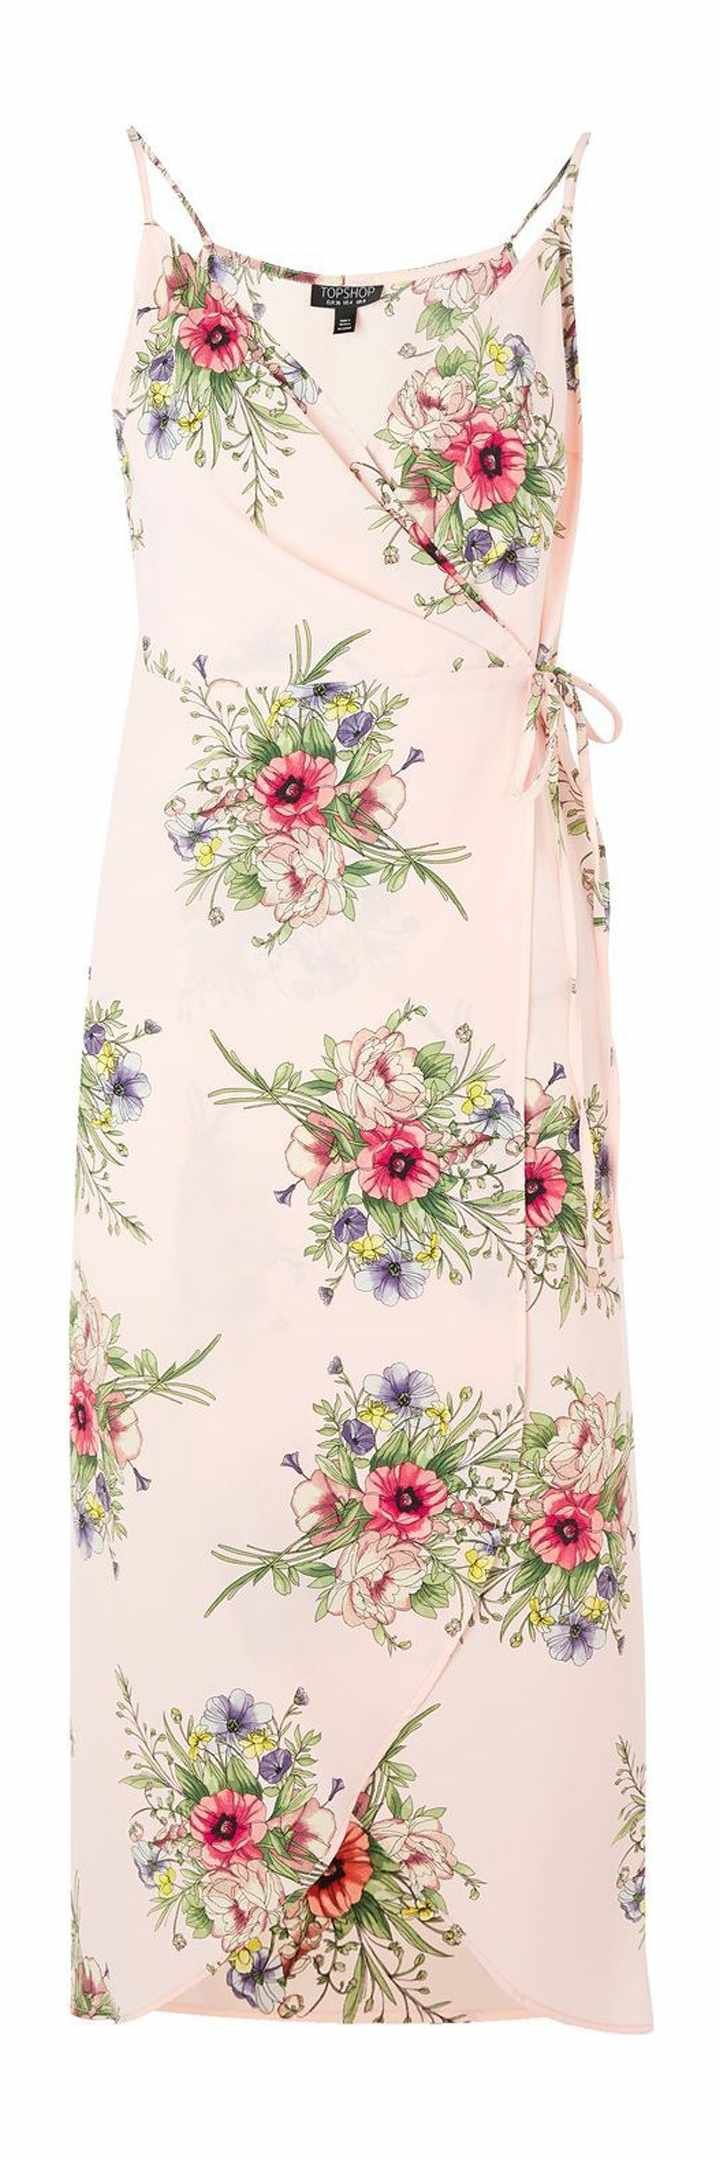 Free shipping and returns on Topshop Floral Wrap Slipdress at Nordstrom.com. A fluttery wrap design joins lush bouquets for true romance on an elegant waist-defining wrap dress with a flattering drapey neckline.